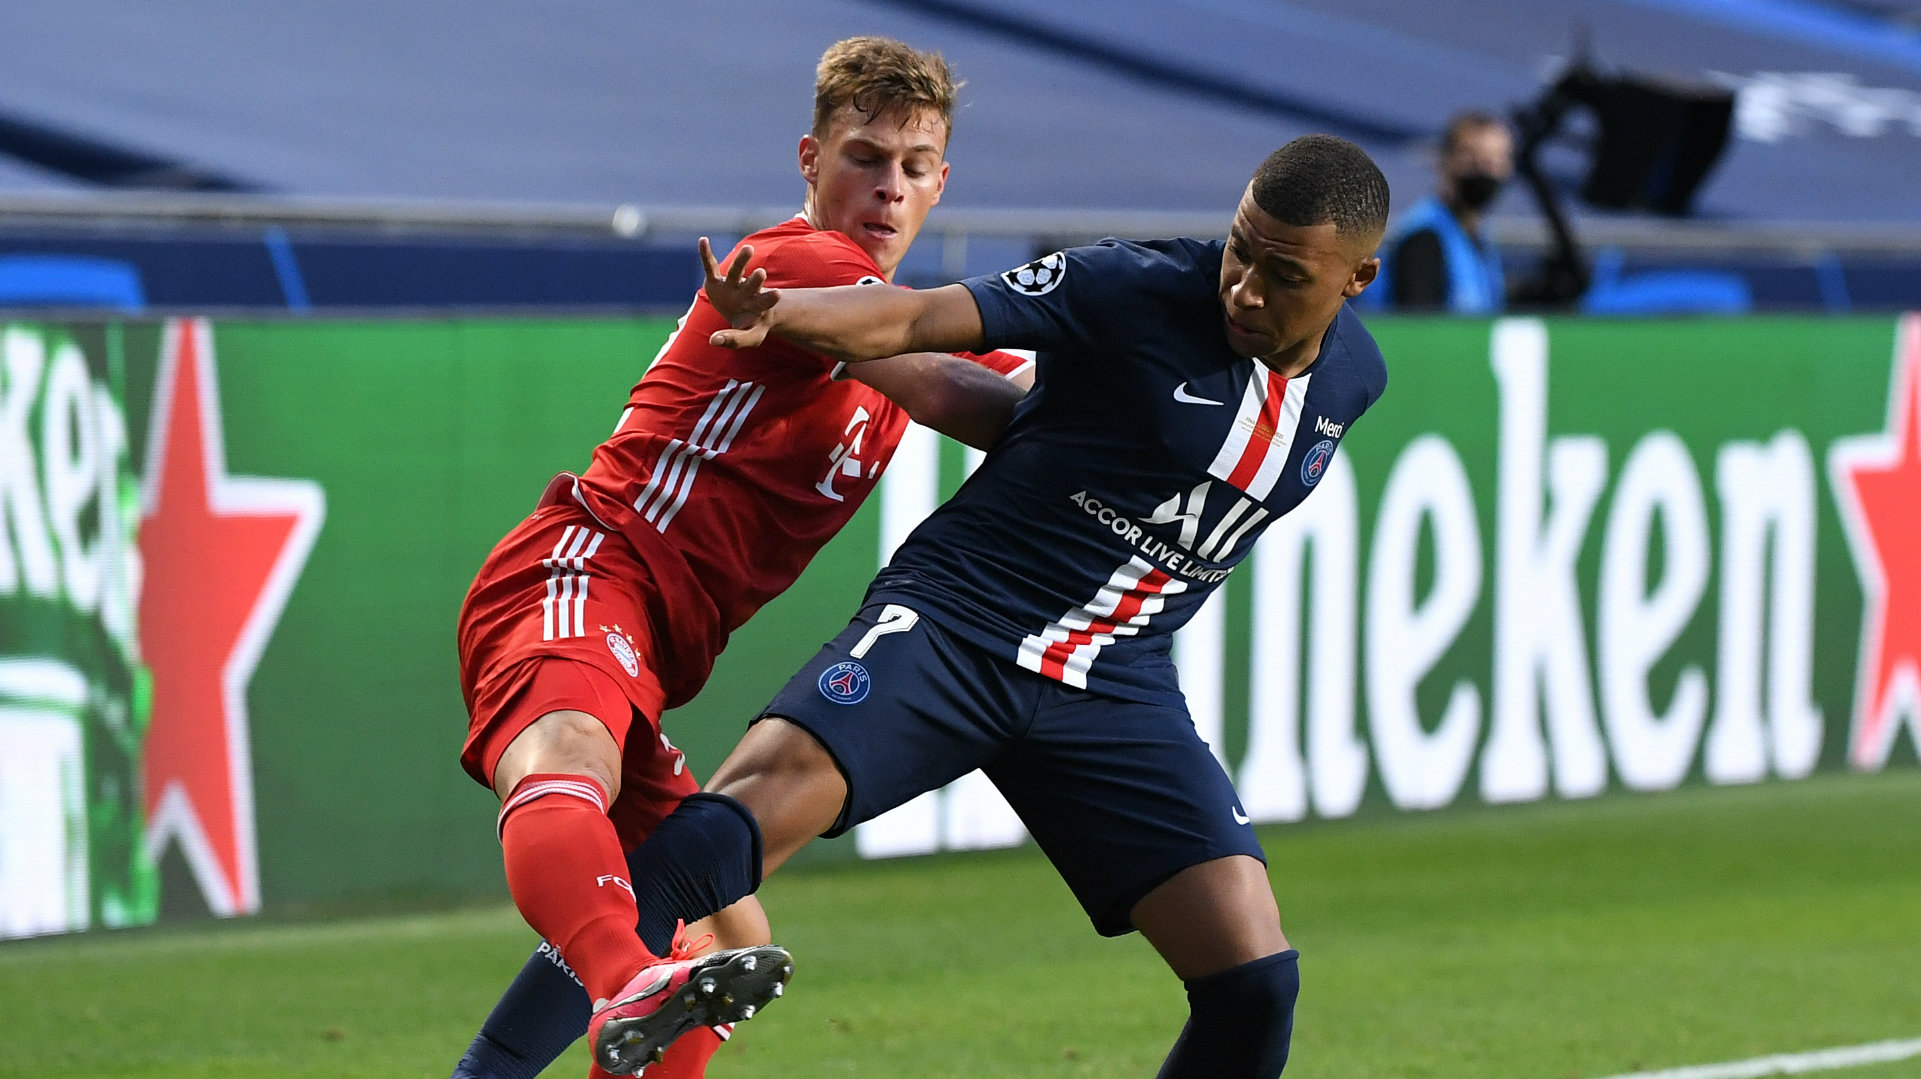 'Neymar and Mbappe can't score all the time' – Tuchel says ...